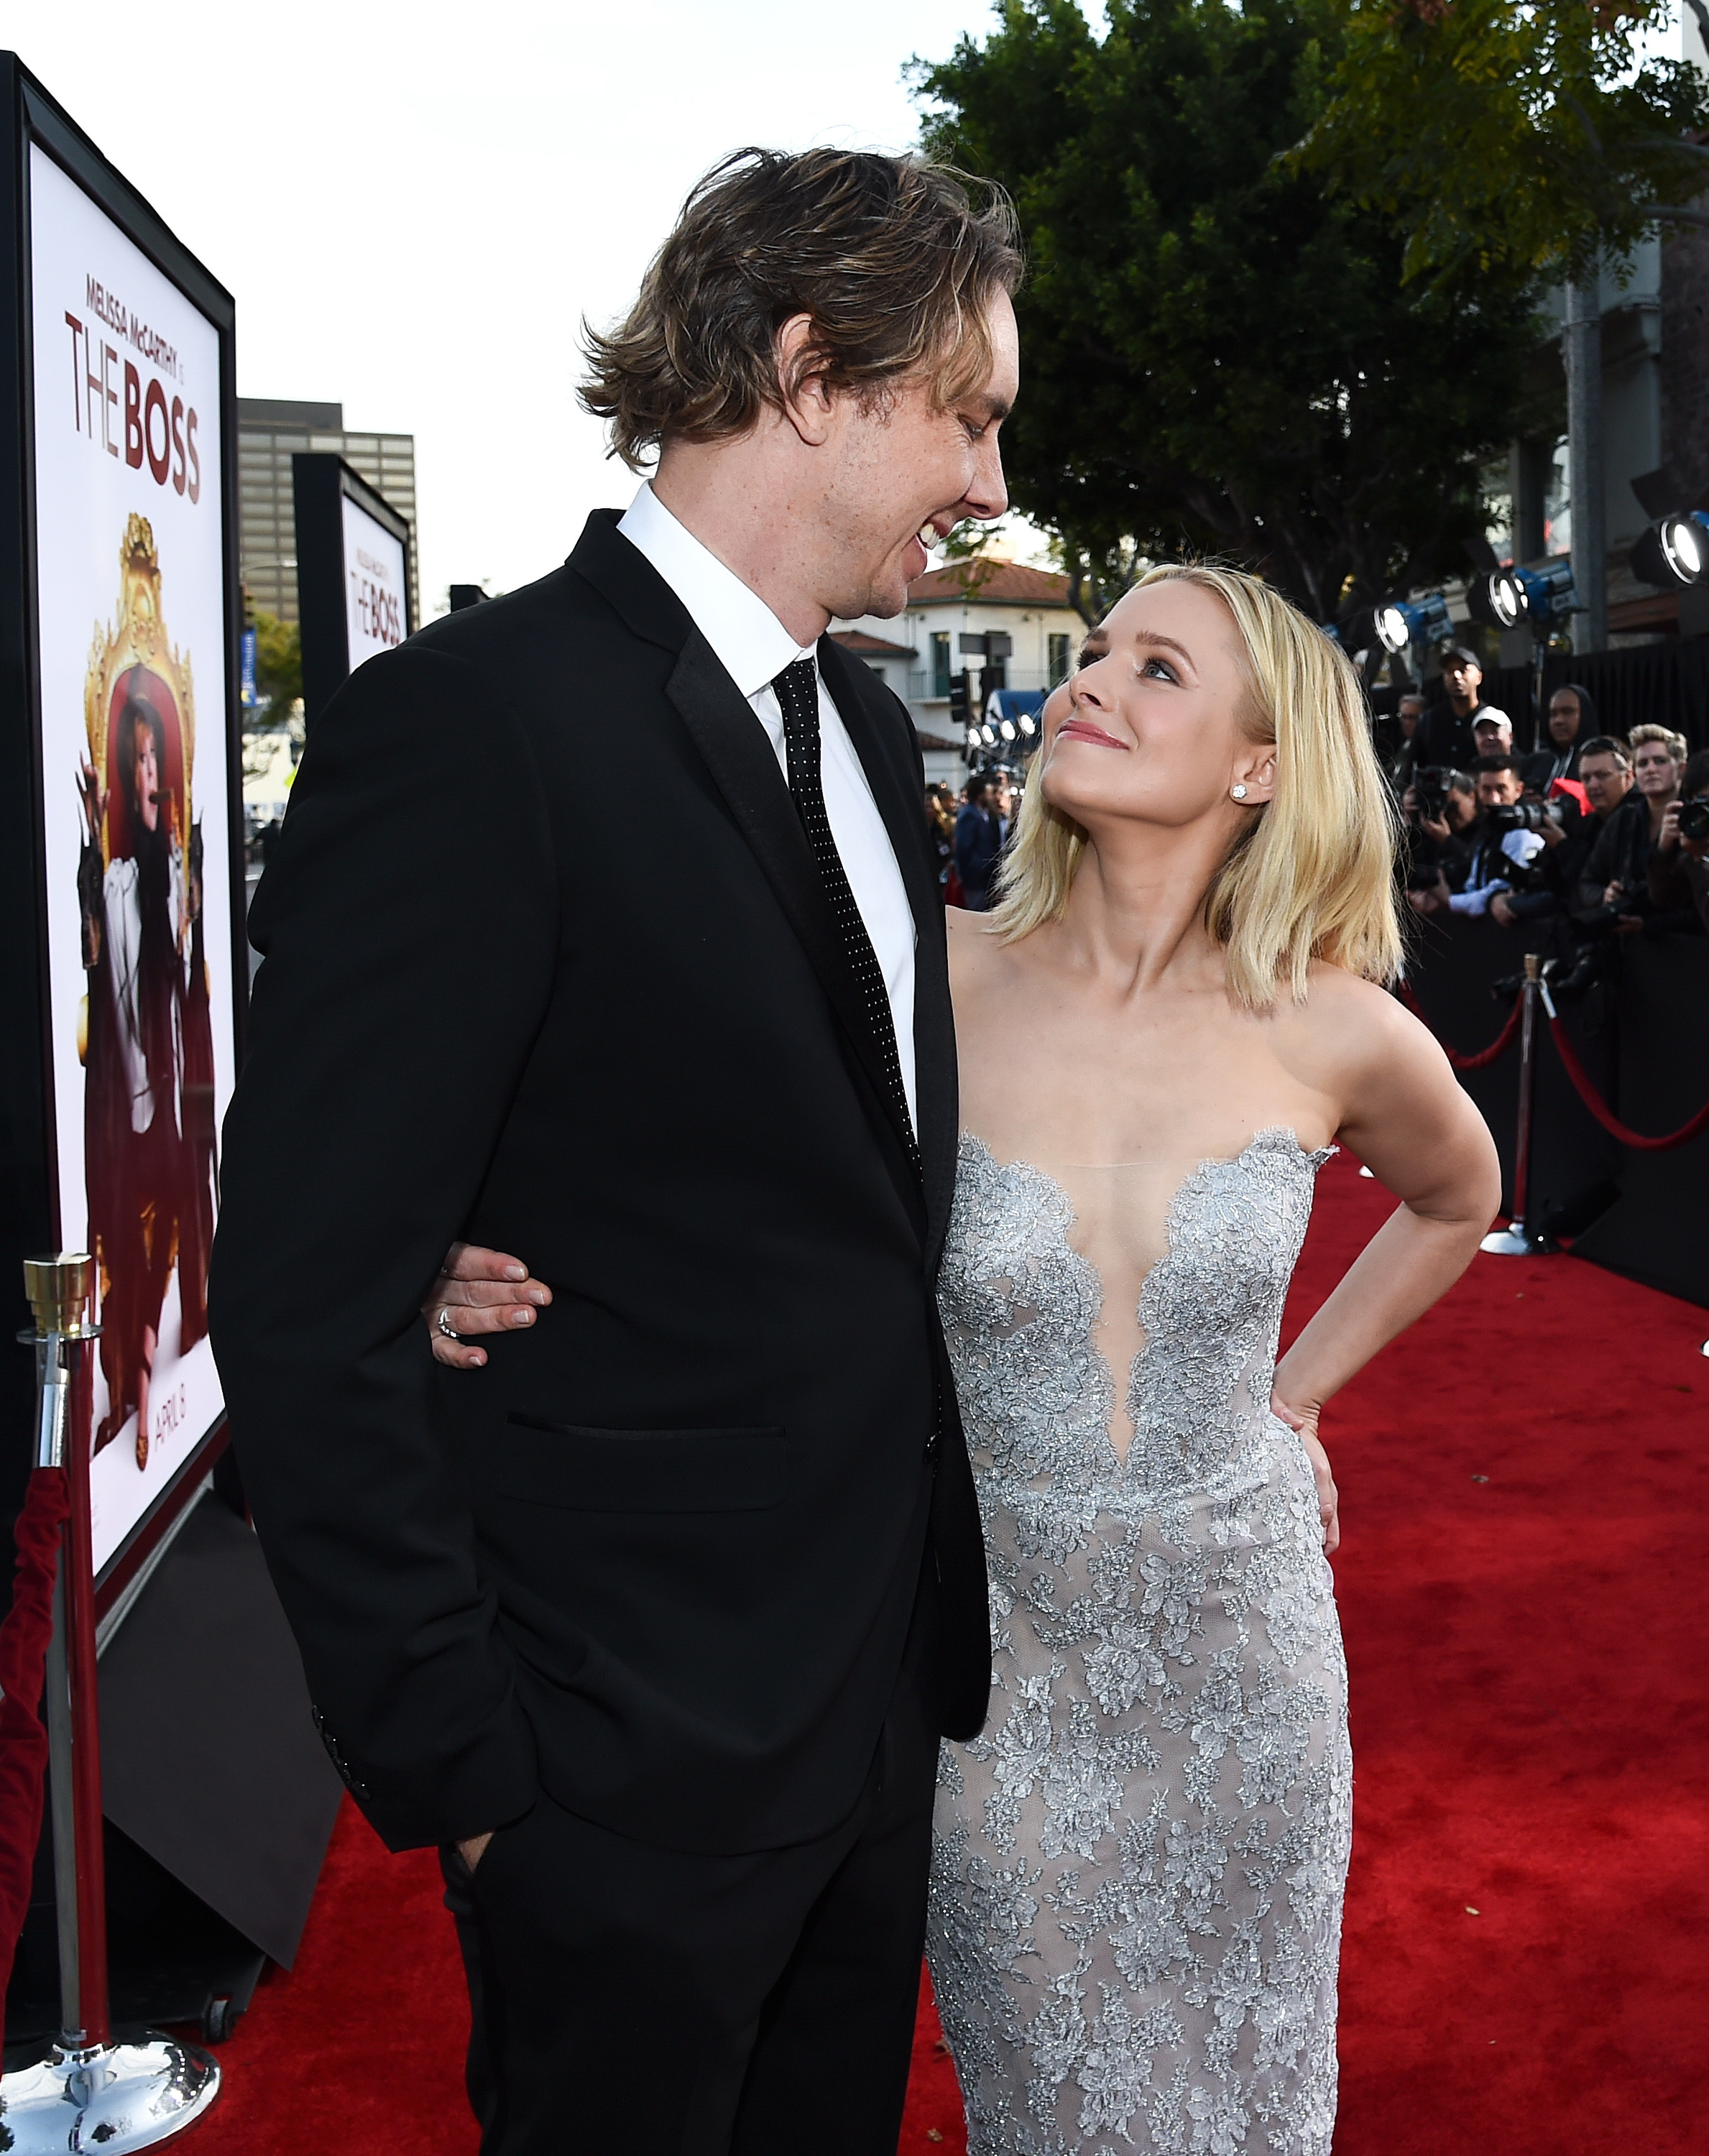 Kristen Bell didn't mind Dax Shepard discussing his vasectomy on TV